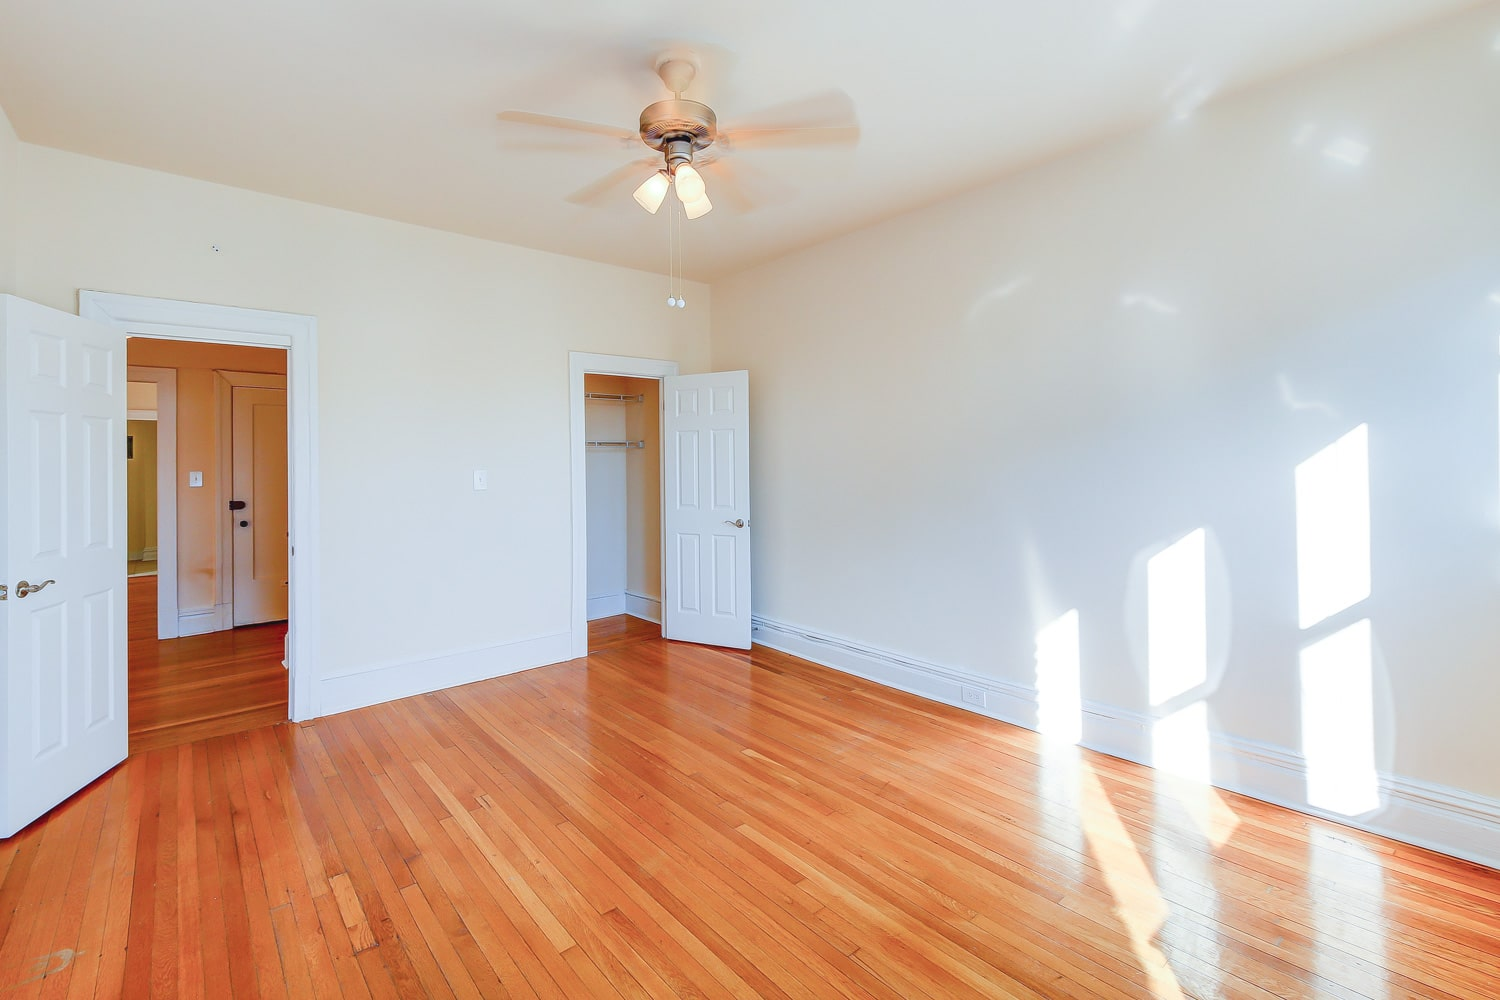 Chatham-courts-apartments-washington-dc-bedroom (5)-min